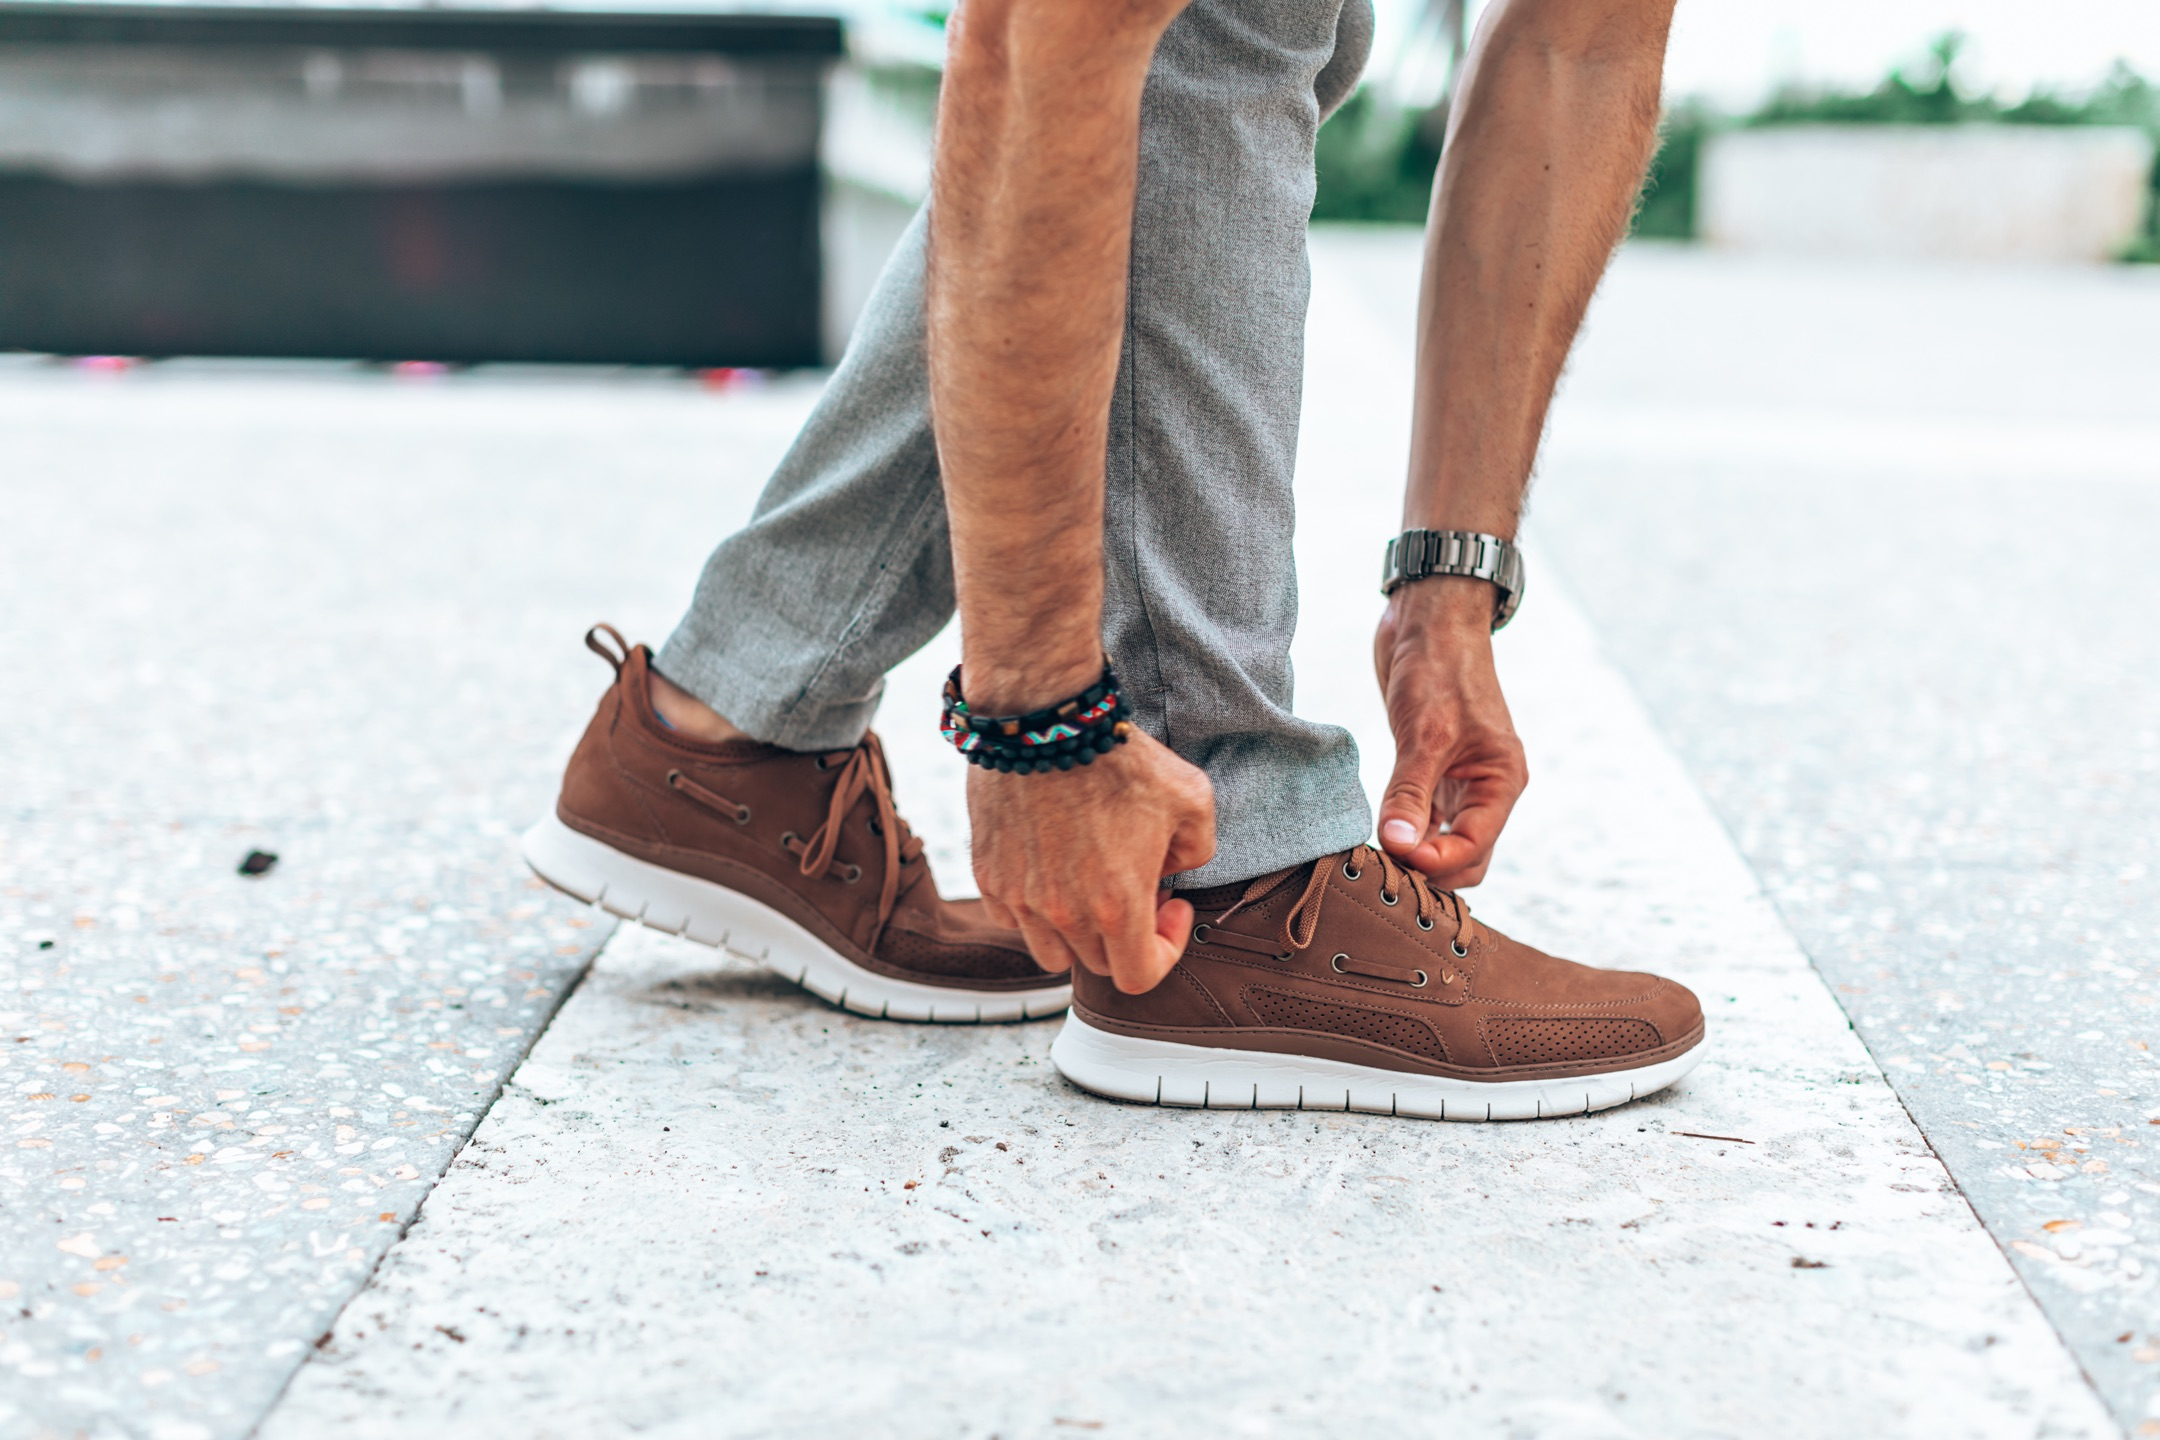 Casual Dress Shoes with Sneaker Soles